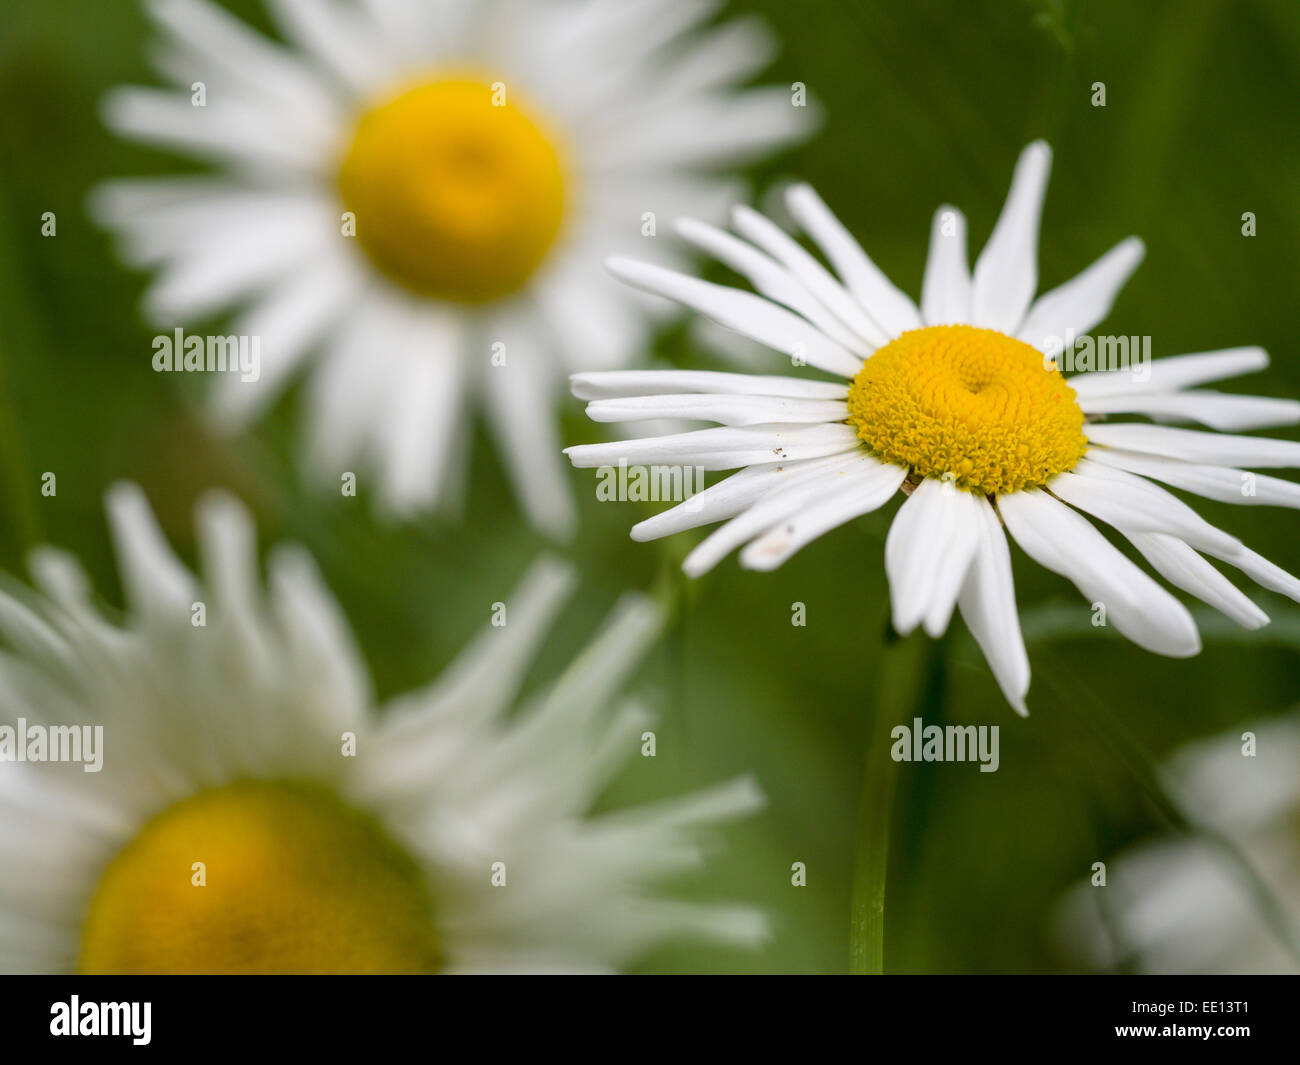 Ox-eye Daisies or Common Daisies. Wild Daisies, oxeye daisies growing in a small opening in the woods. Stock Photo